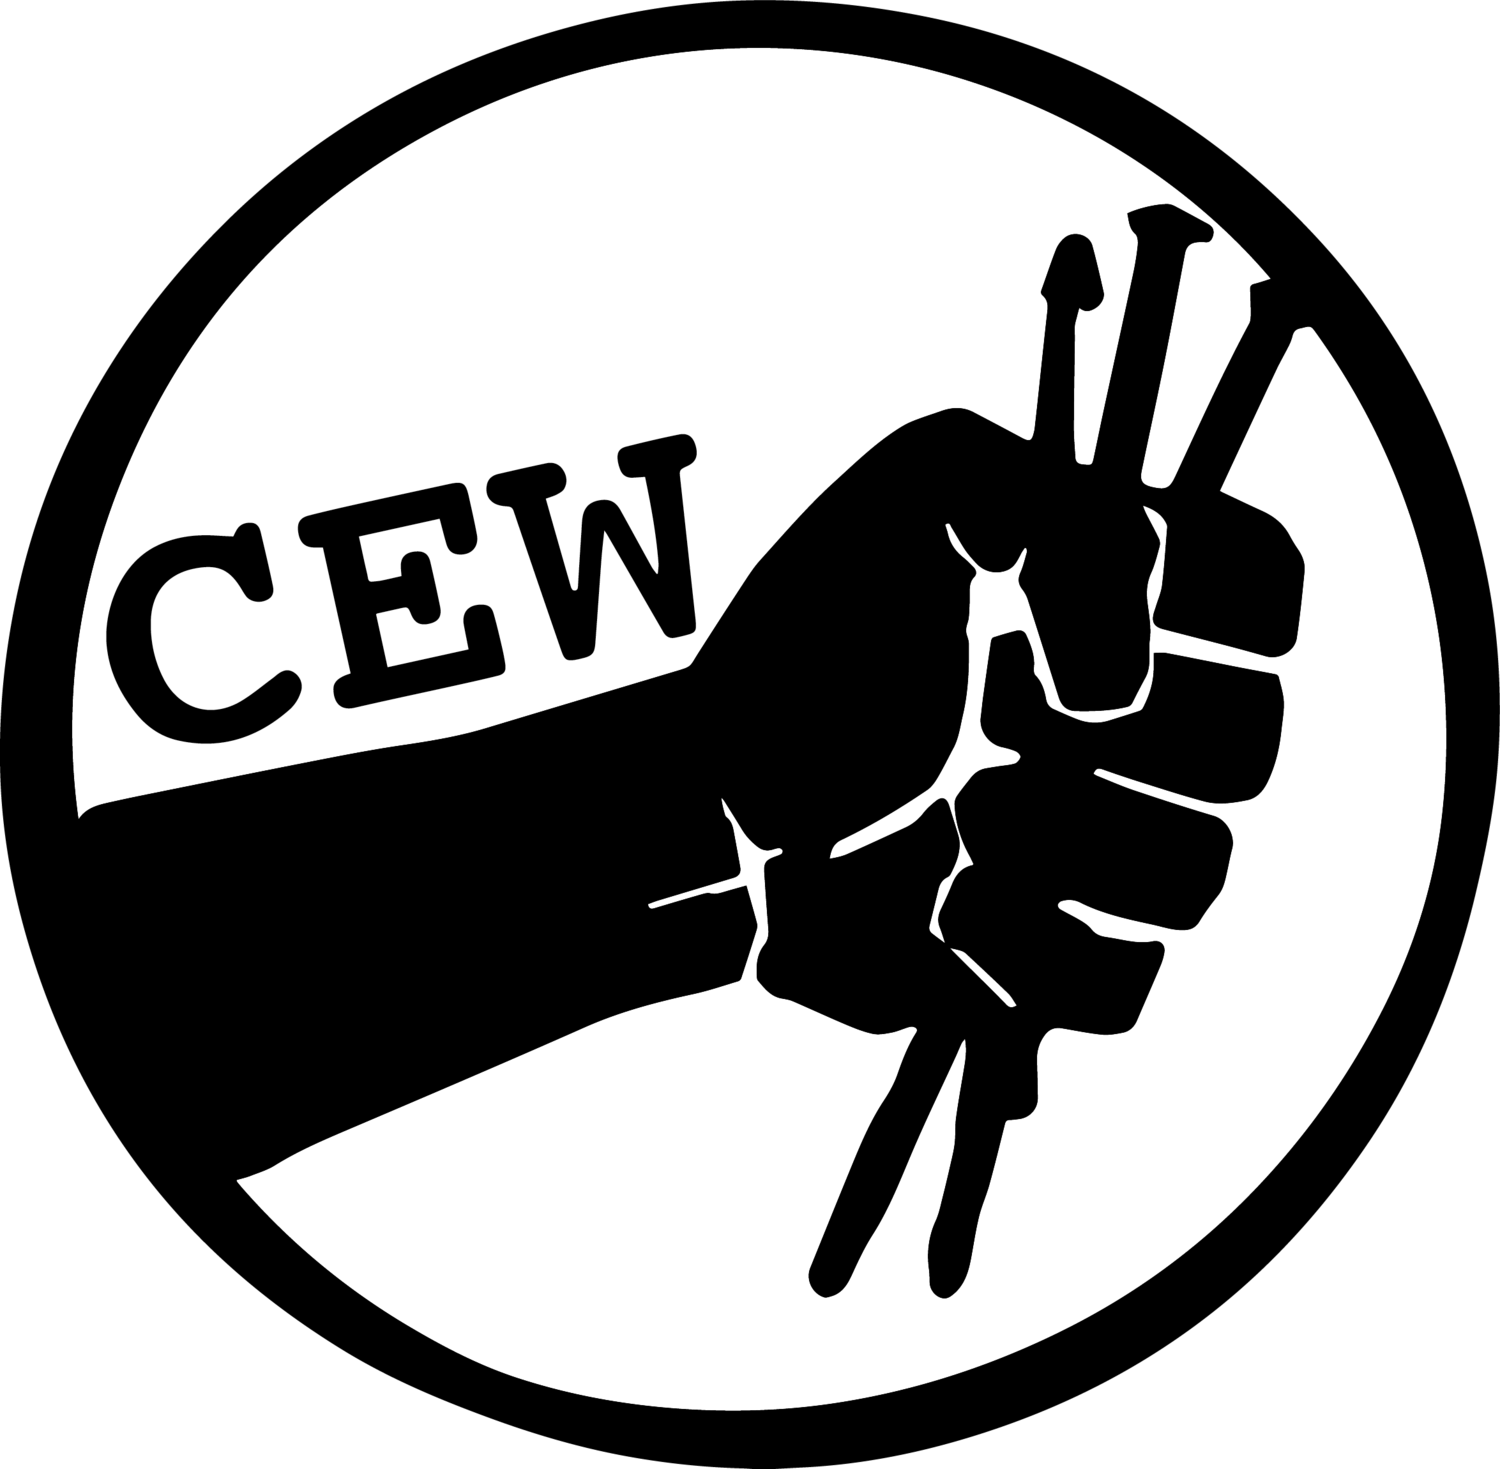 CEW Design Studio